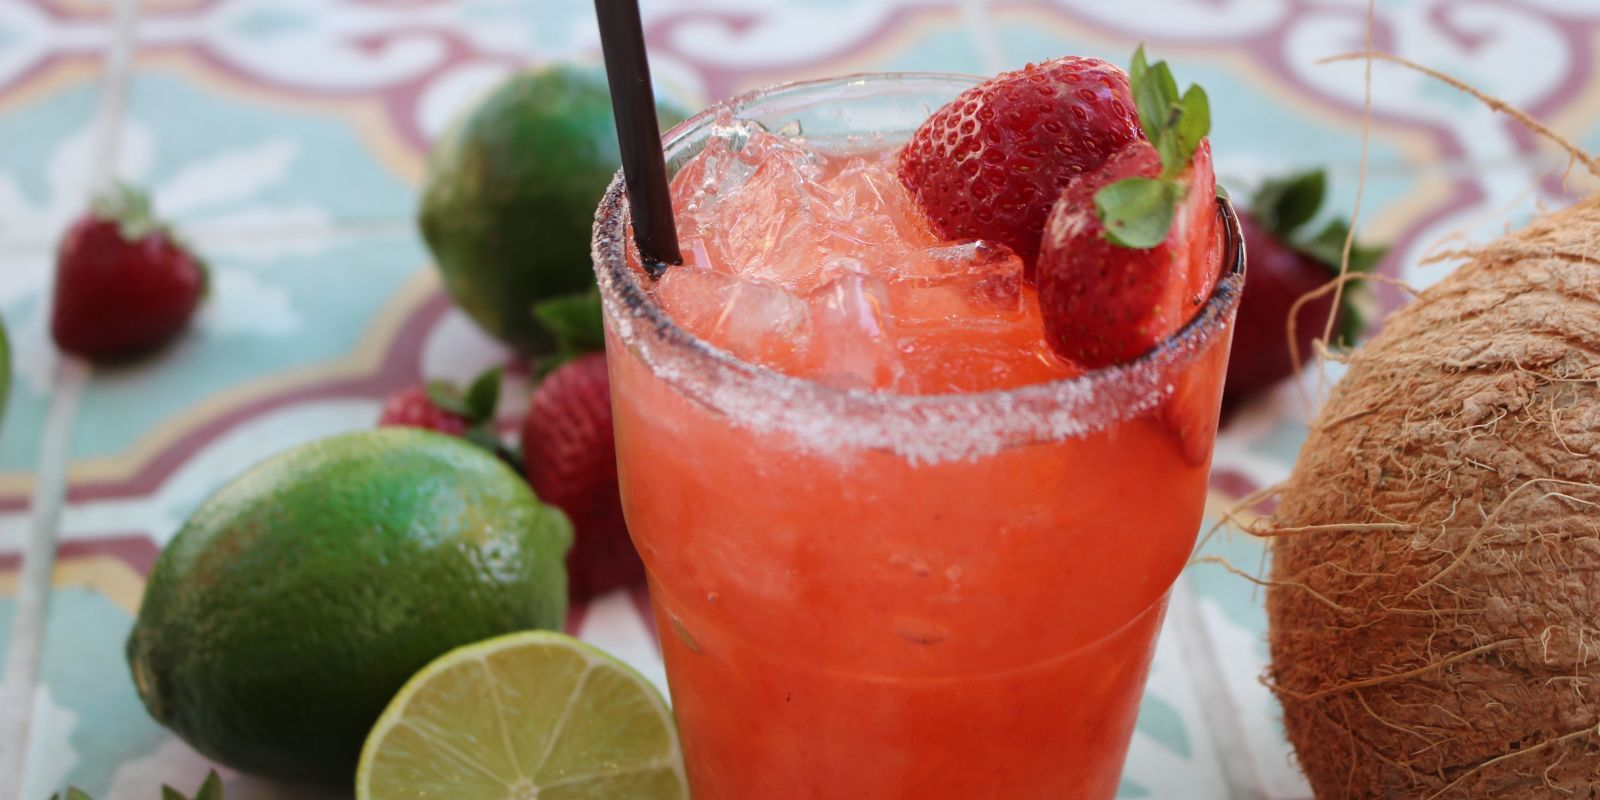 Margarita, check. Punch, check. Step right up to your tequila paradise.